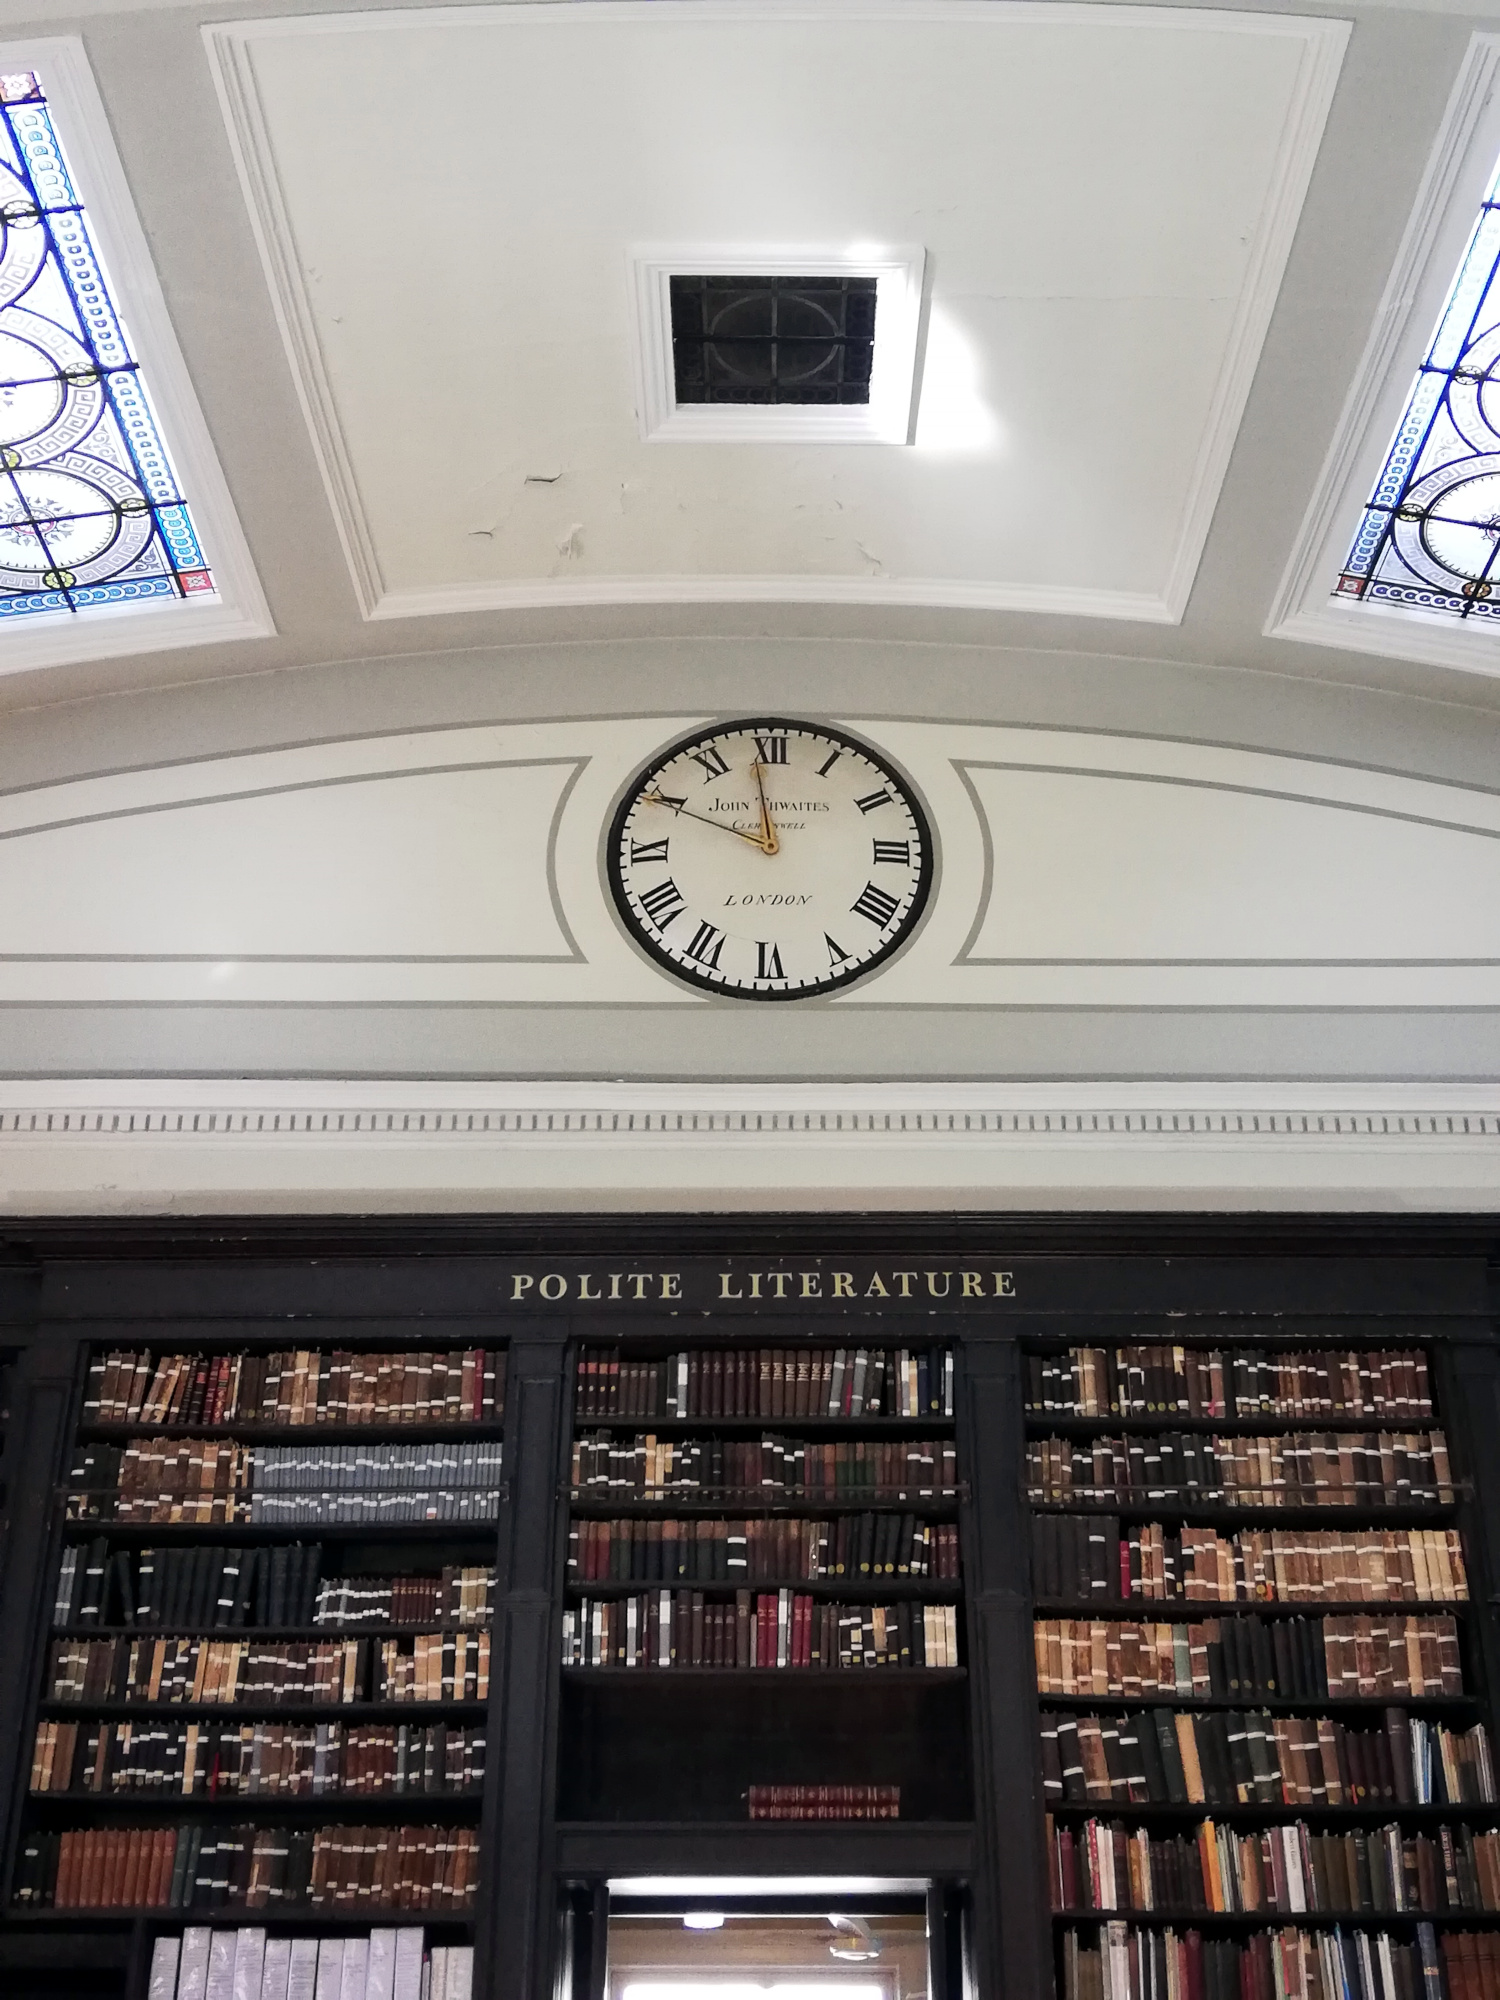 Portico Library, Manchester